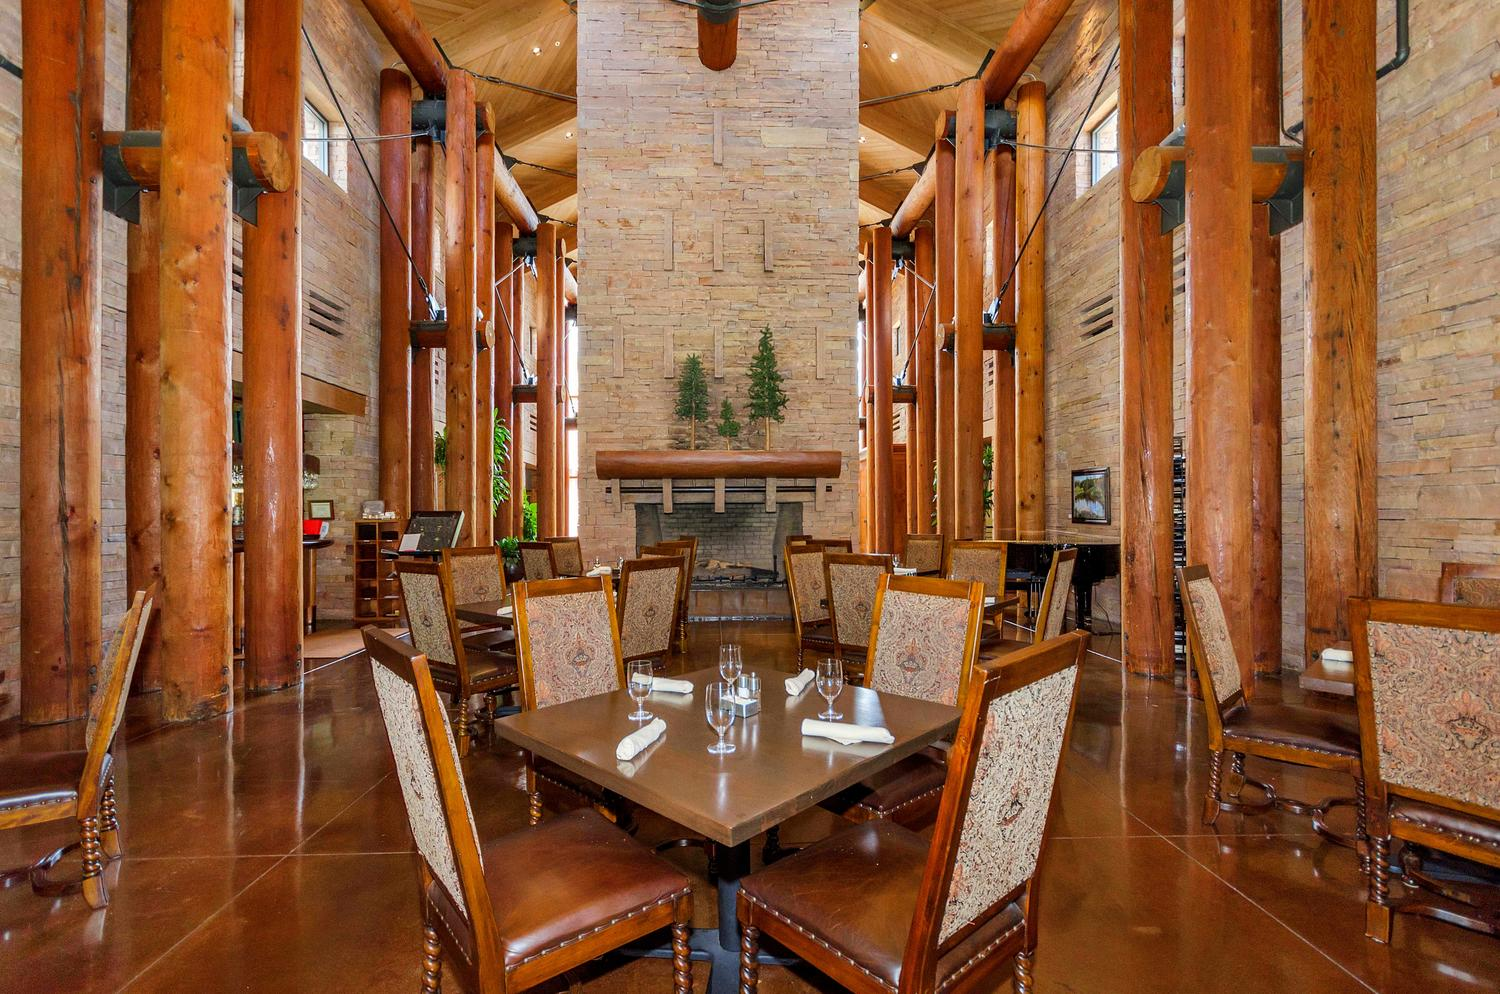 Clubhouse Chaparral Pines